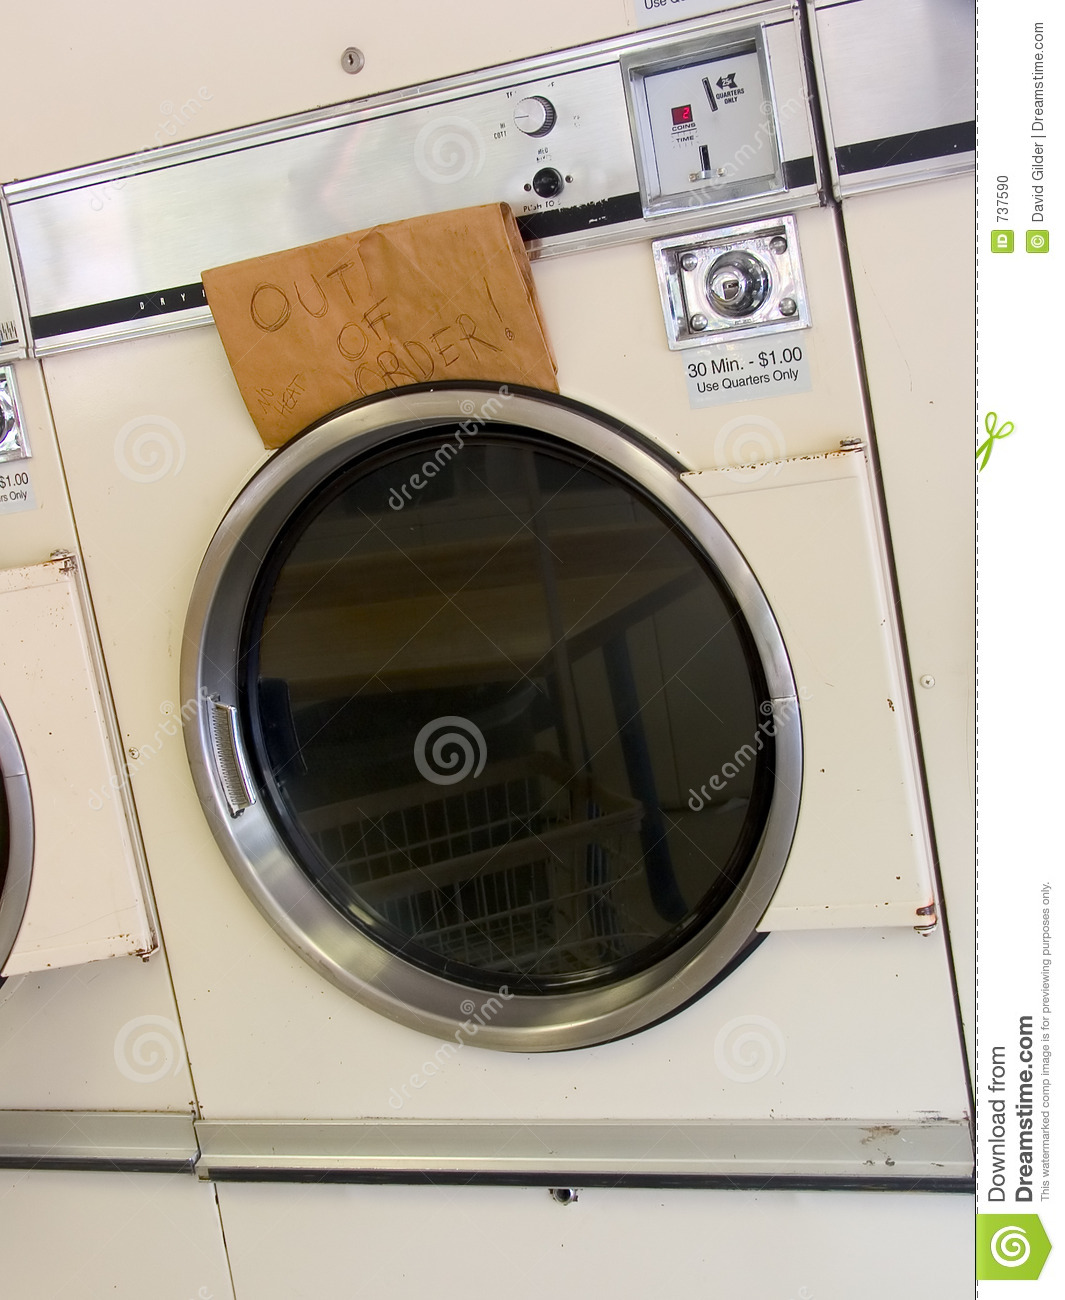 Laundromat dryer out of order